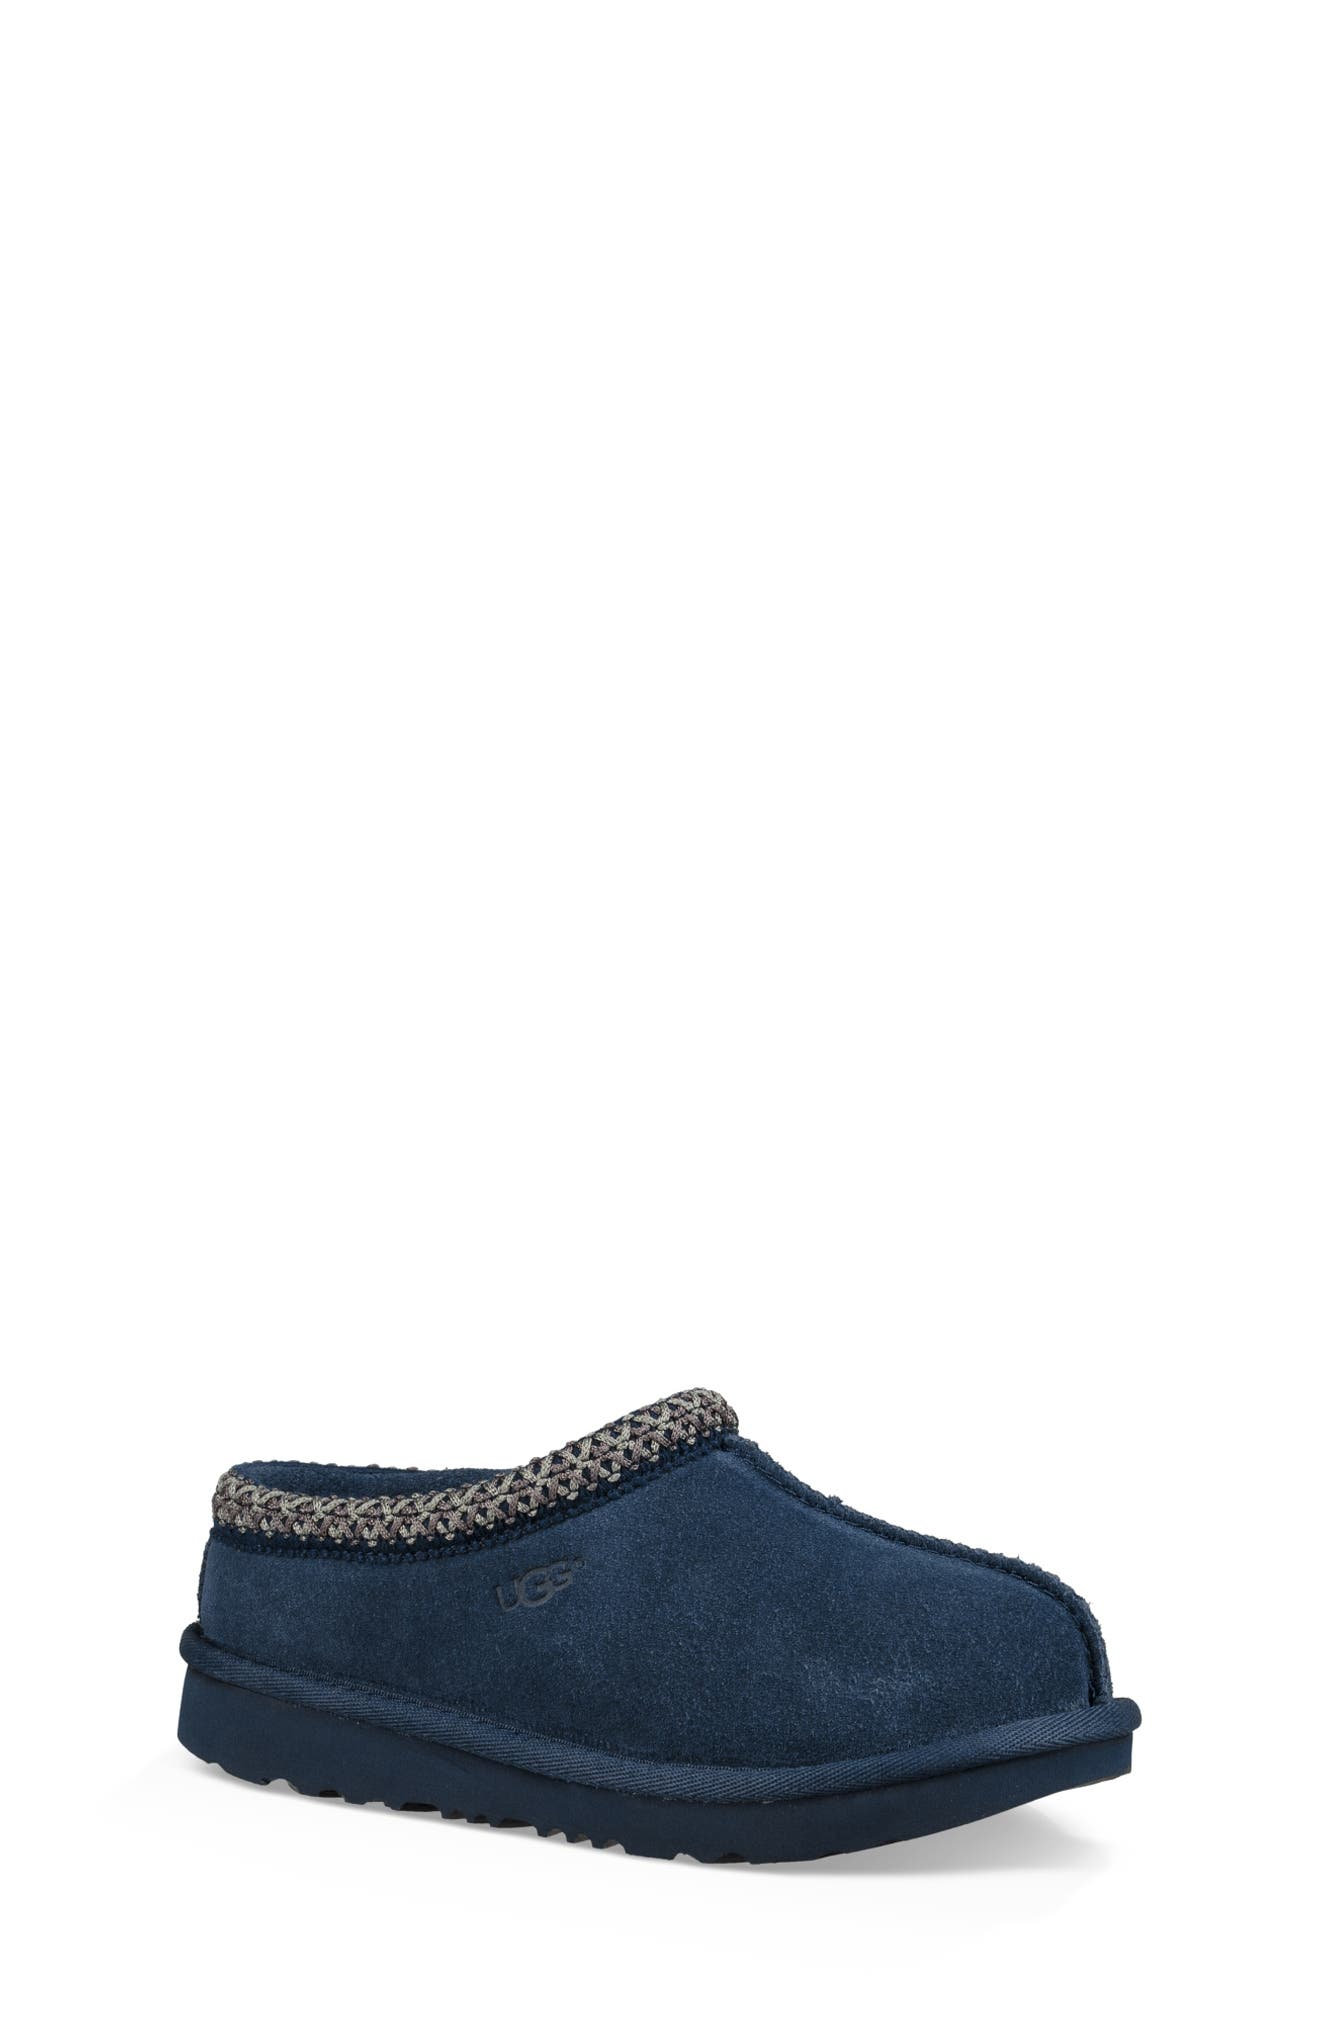 UGG<SUP>®</SUP>, K-Tasman II Embroidered Slipper, Main thumbnail 1, color, NEW NAVY